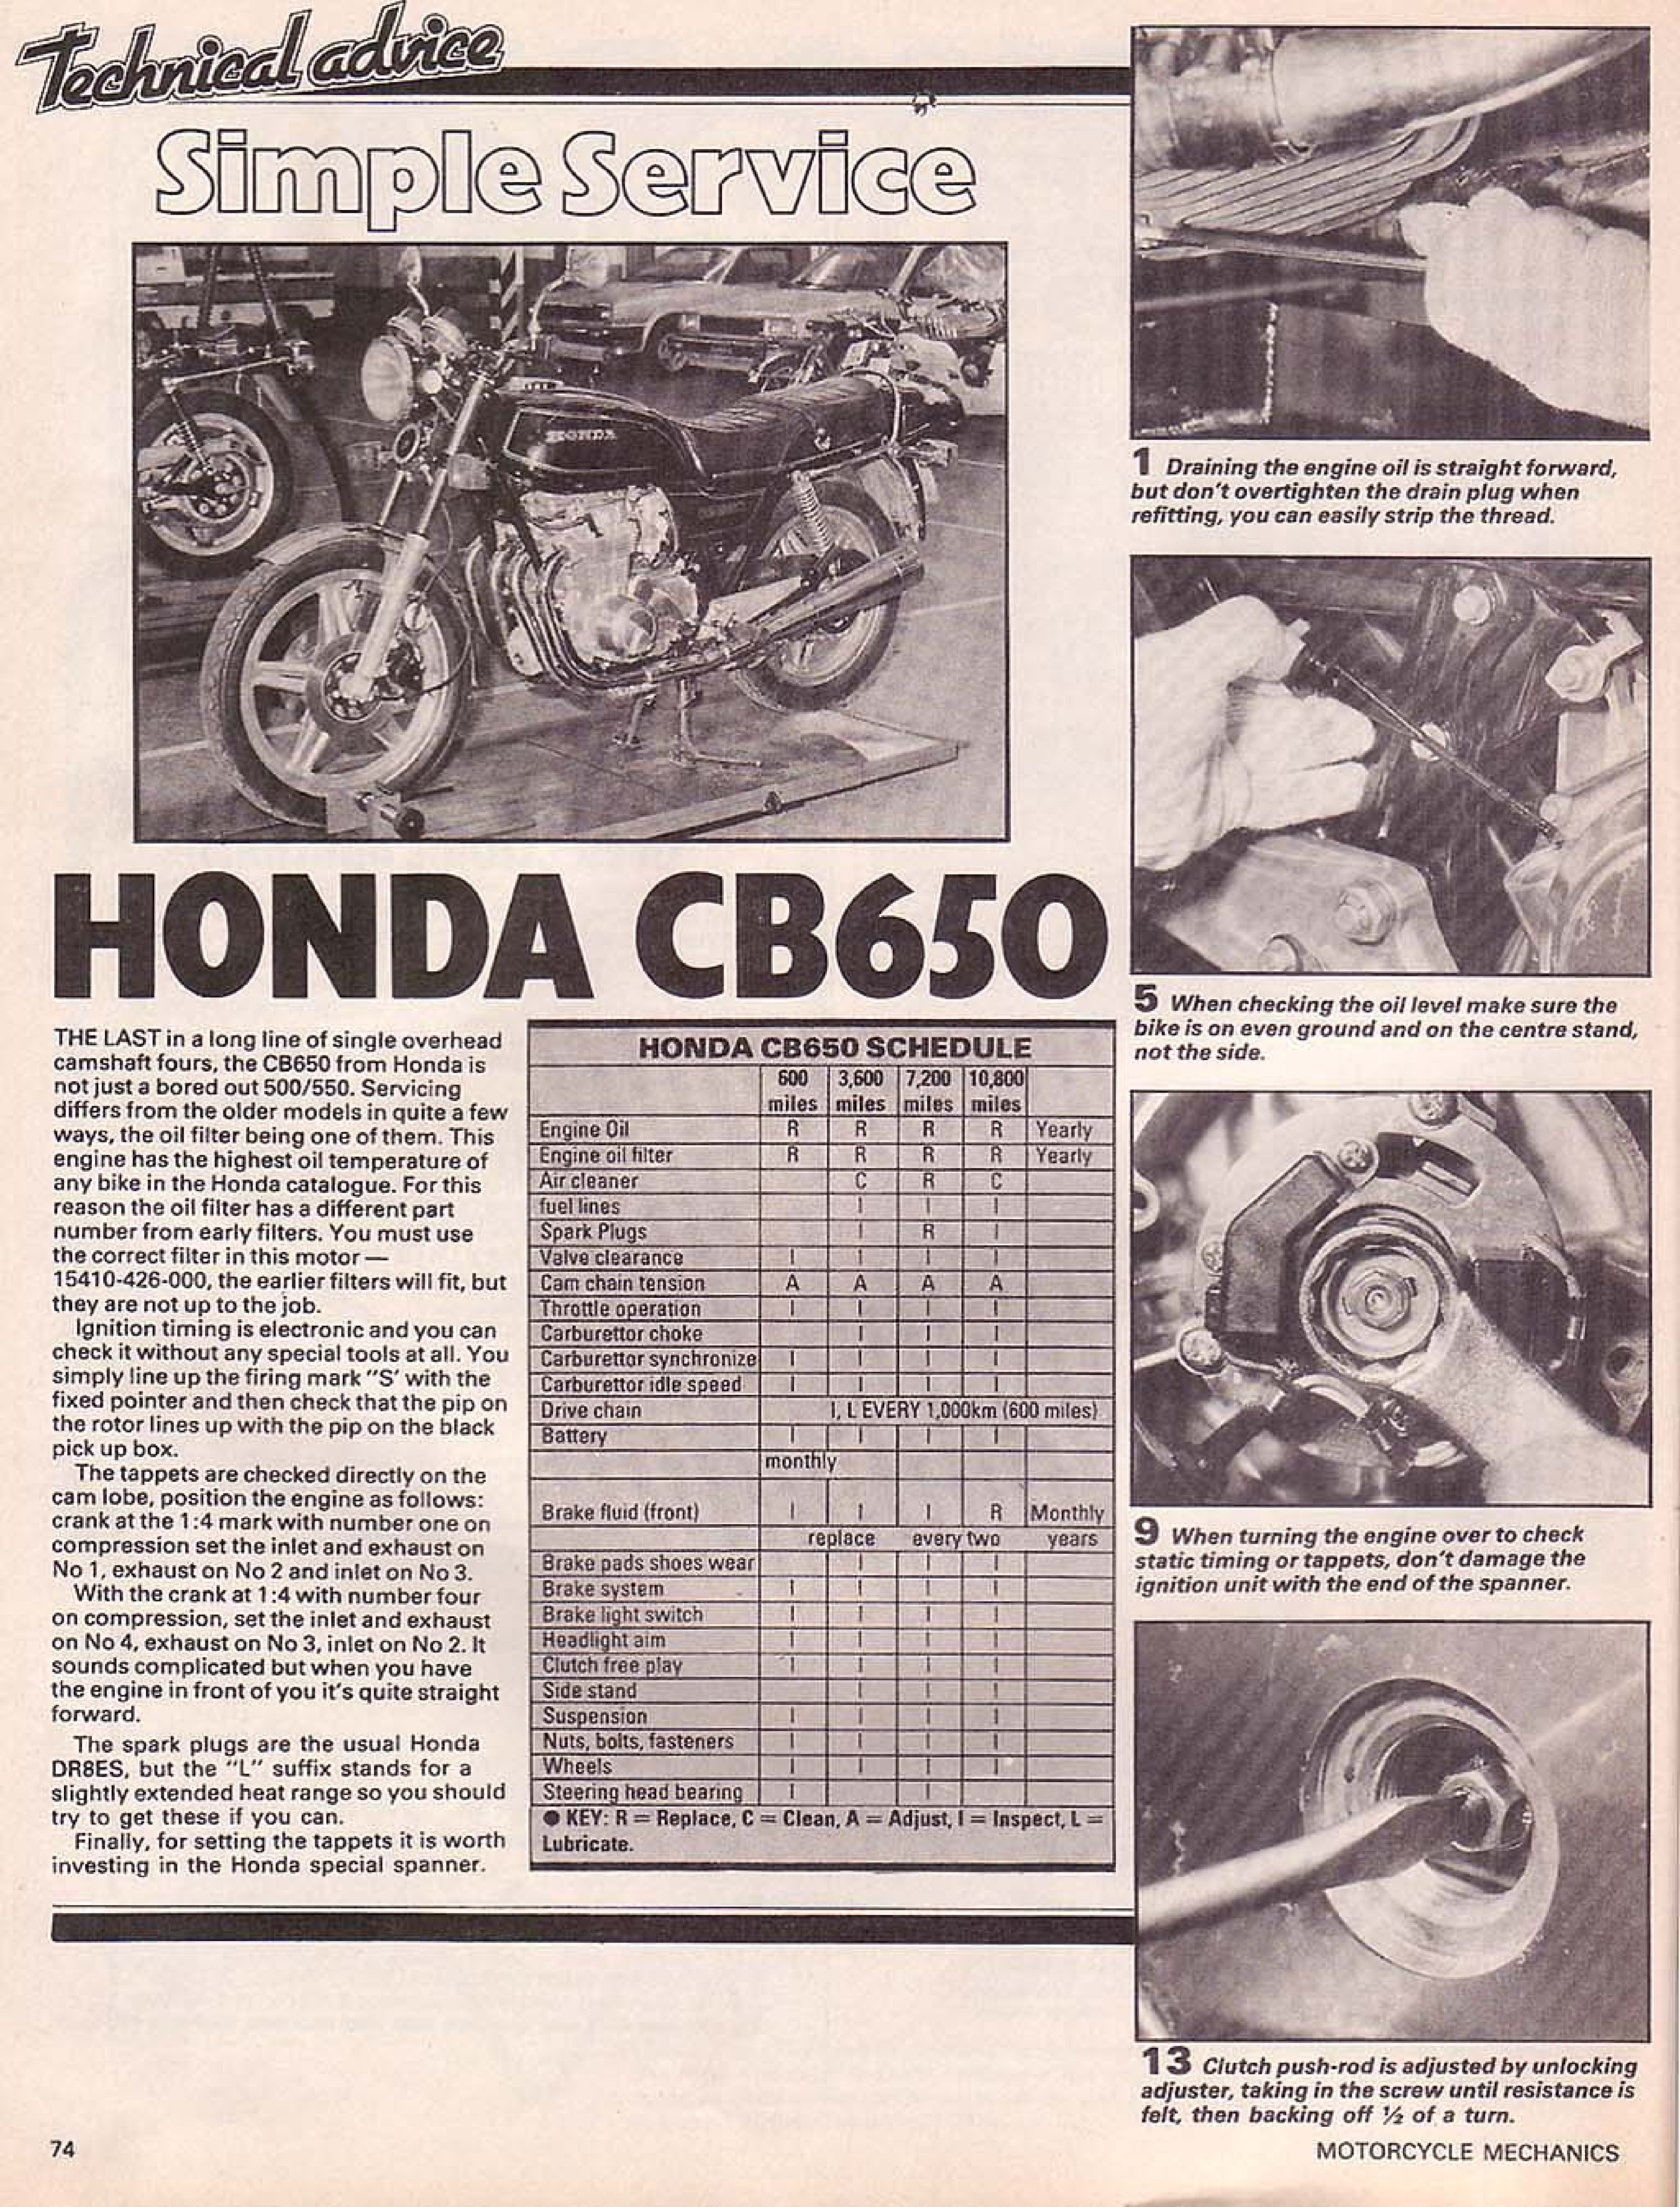 Motorcycle Mechanics about Honda CB650 (May 1981)